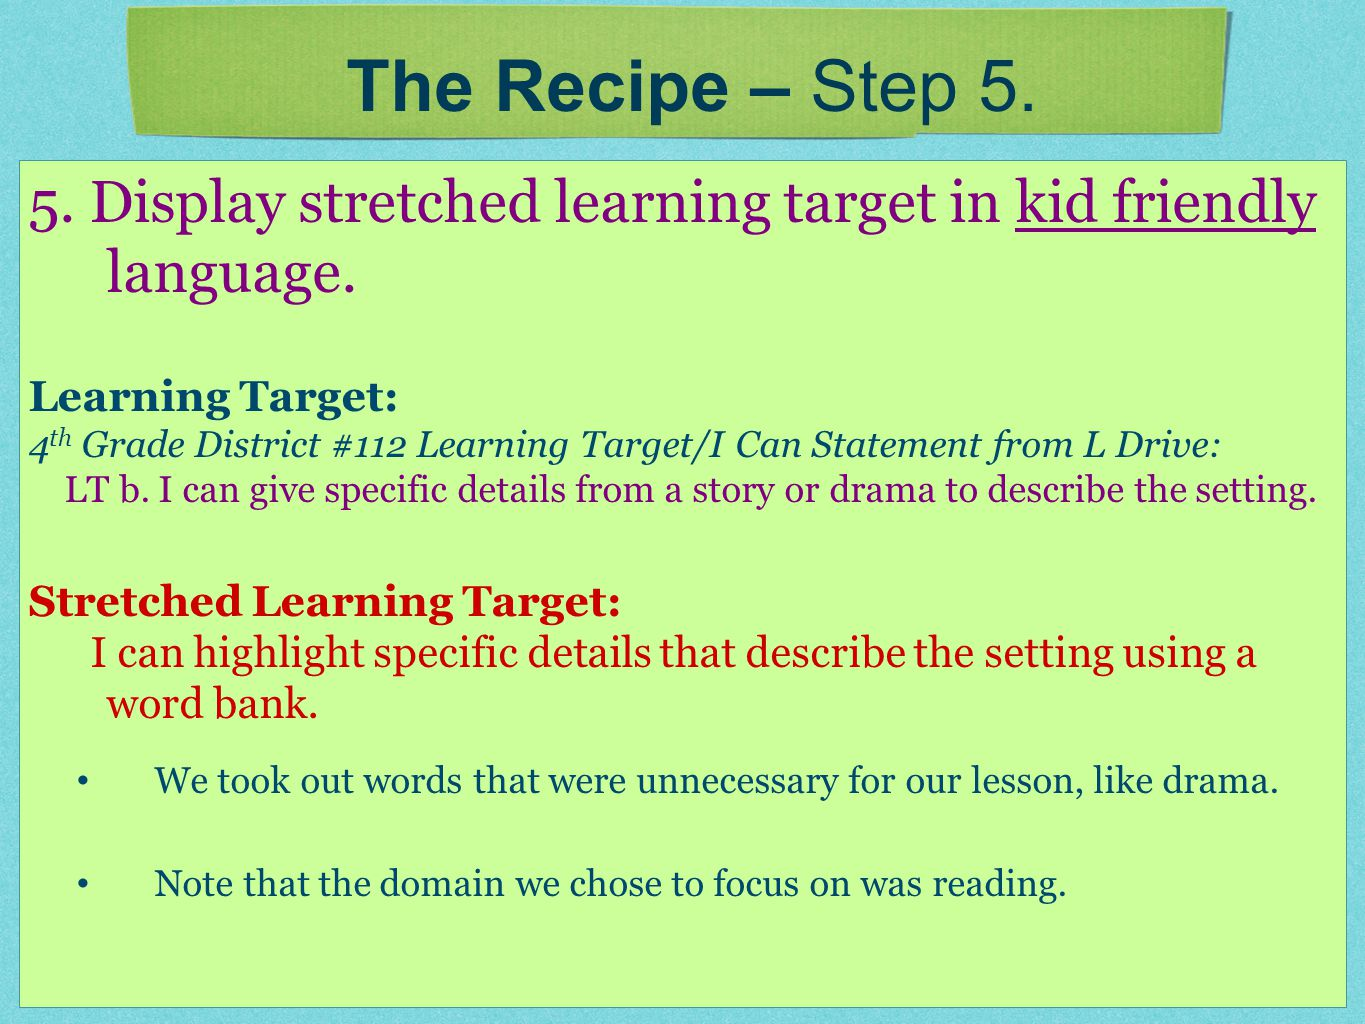 5. Display stretched learning target in kid friendly language. Learning Target: 4 th Grade District #112 Learning Target/I Can Statement from L Drive: